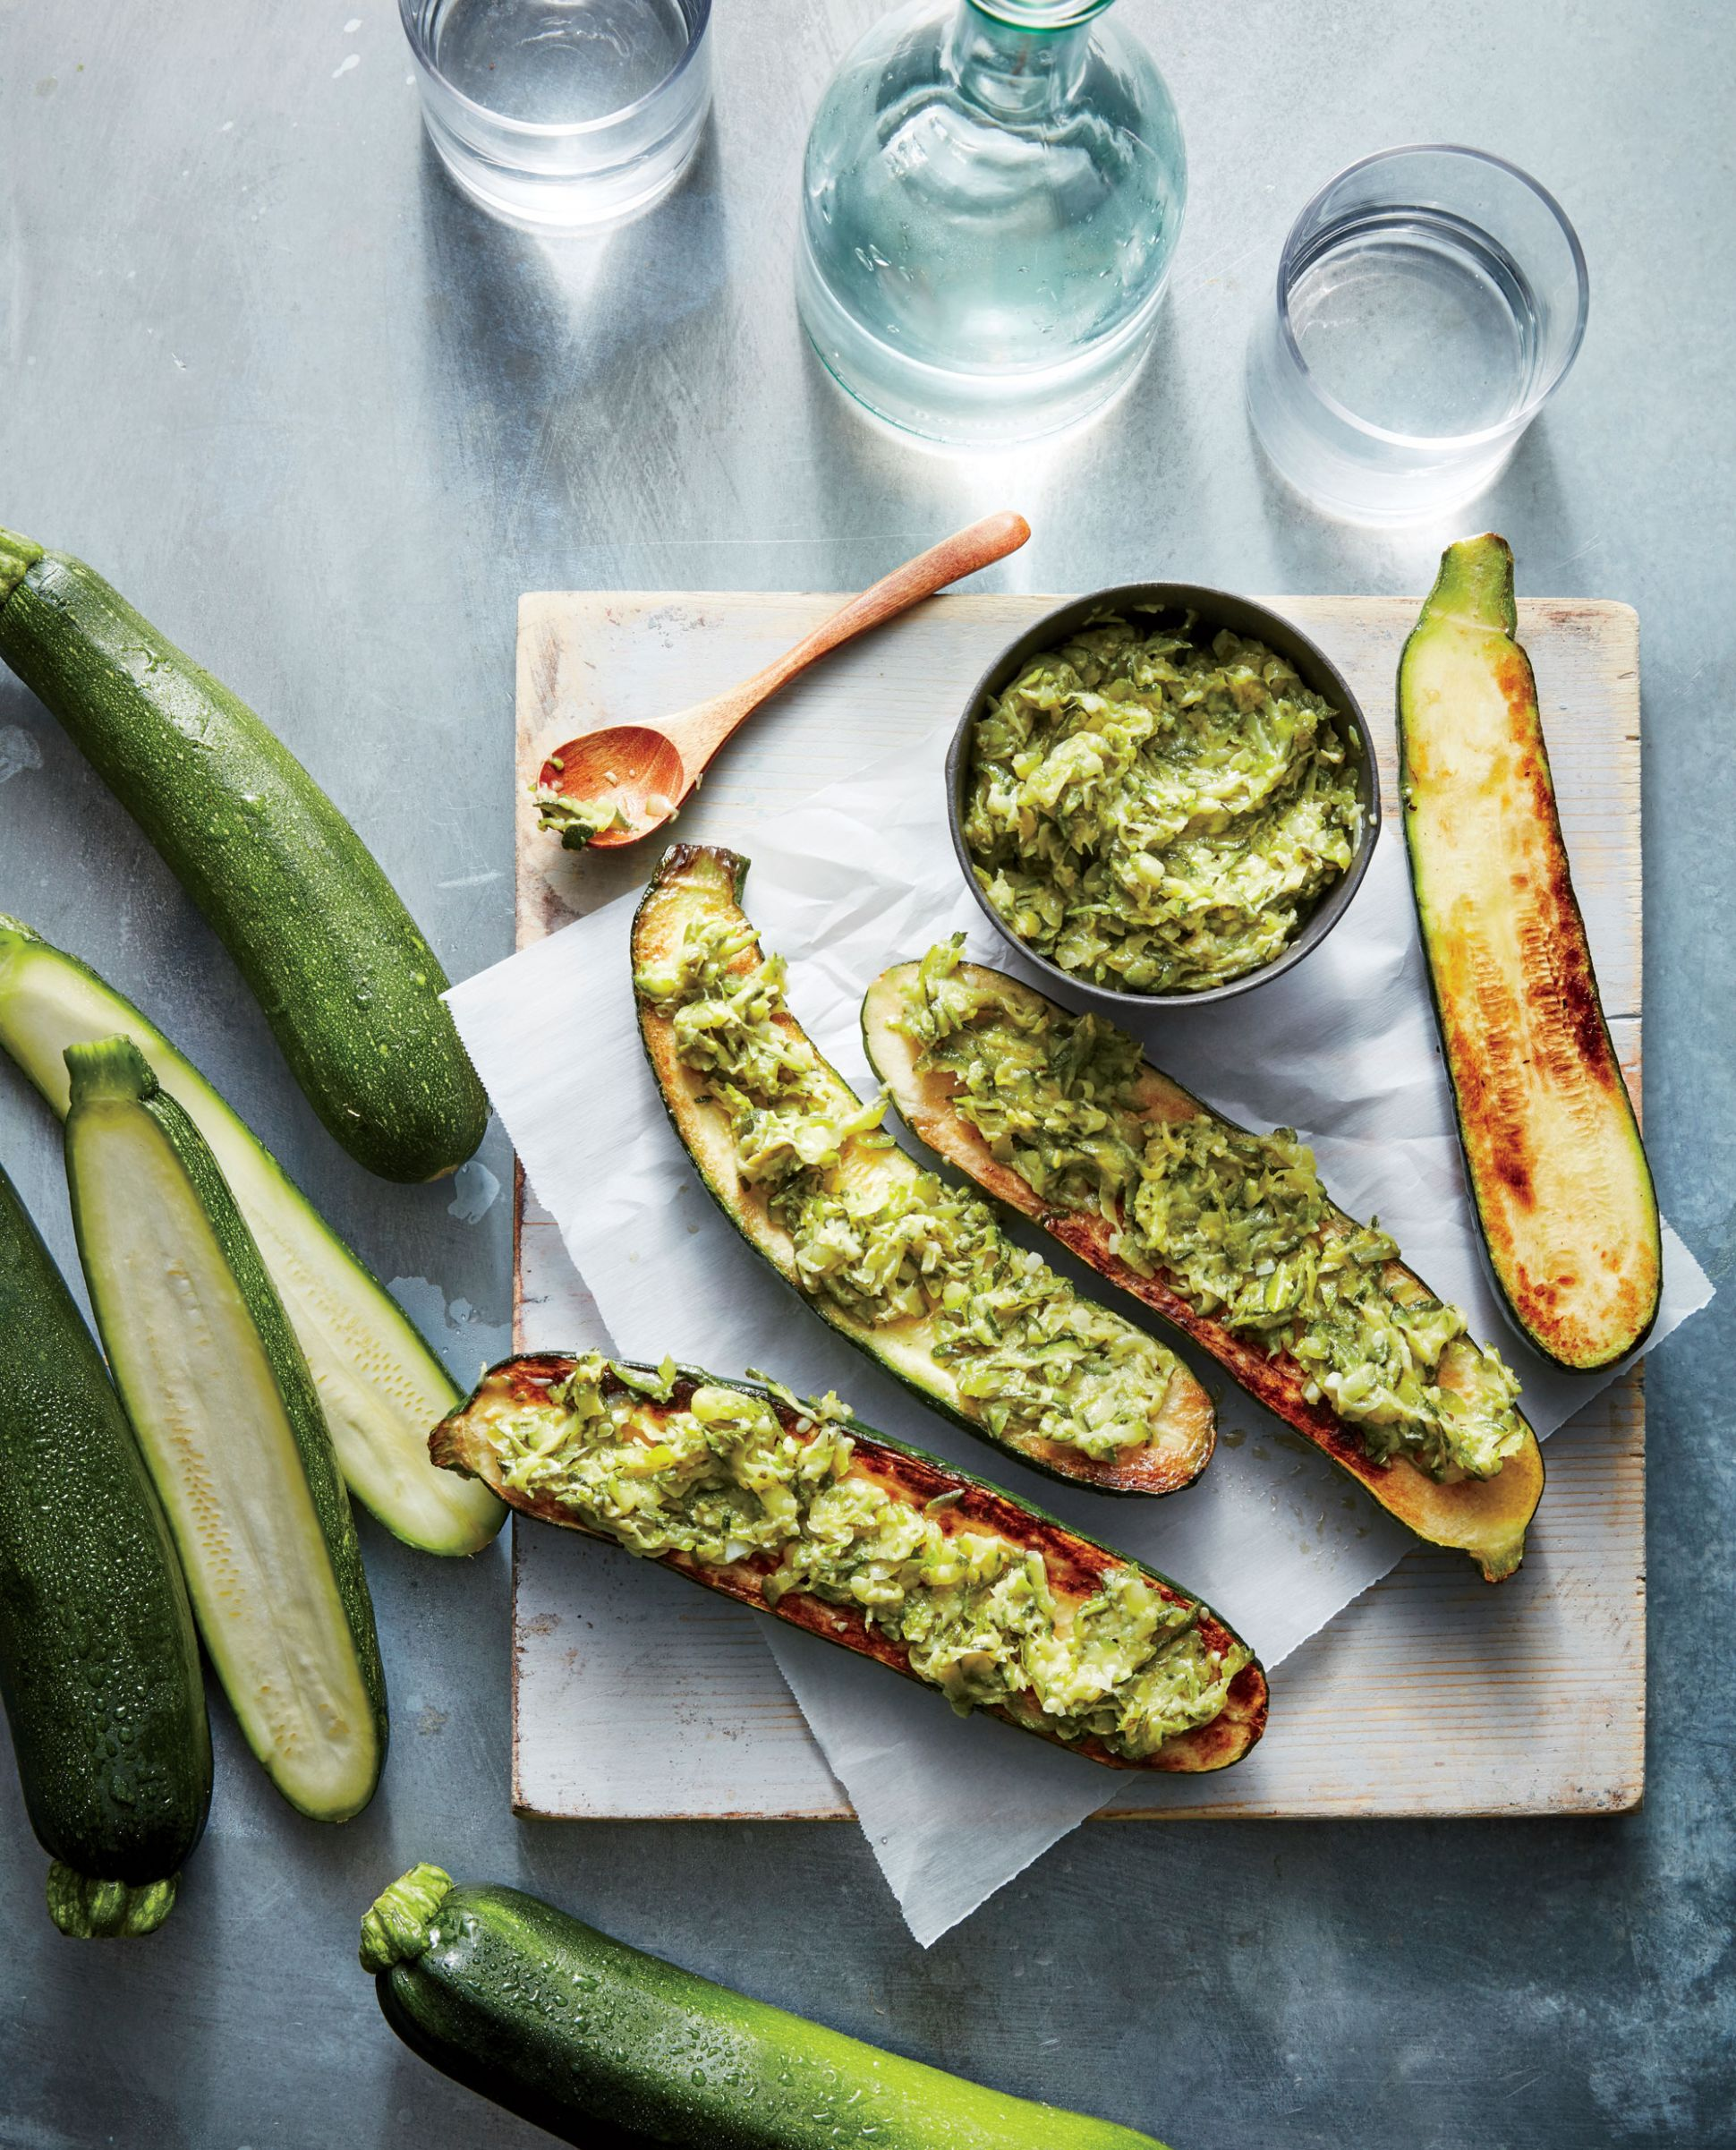 10 Healthy Zucchini Recipes | Cooking Light